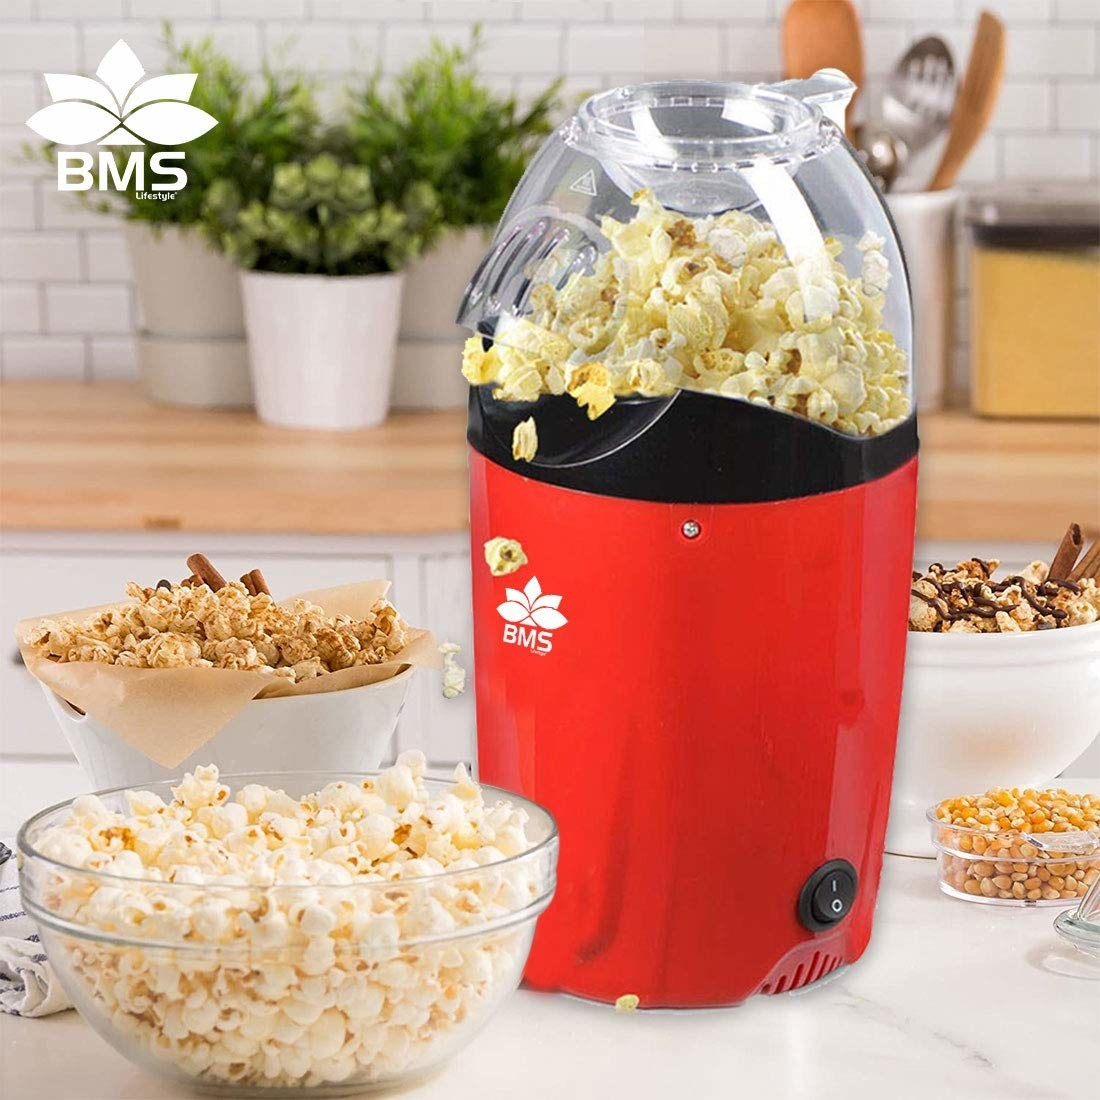 A red popcorn maker pictured while cooking the snack and a bowl of popcorn in the foreground.